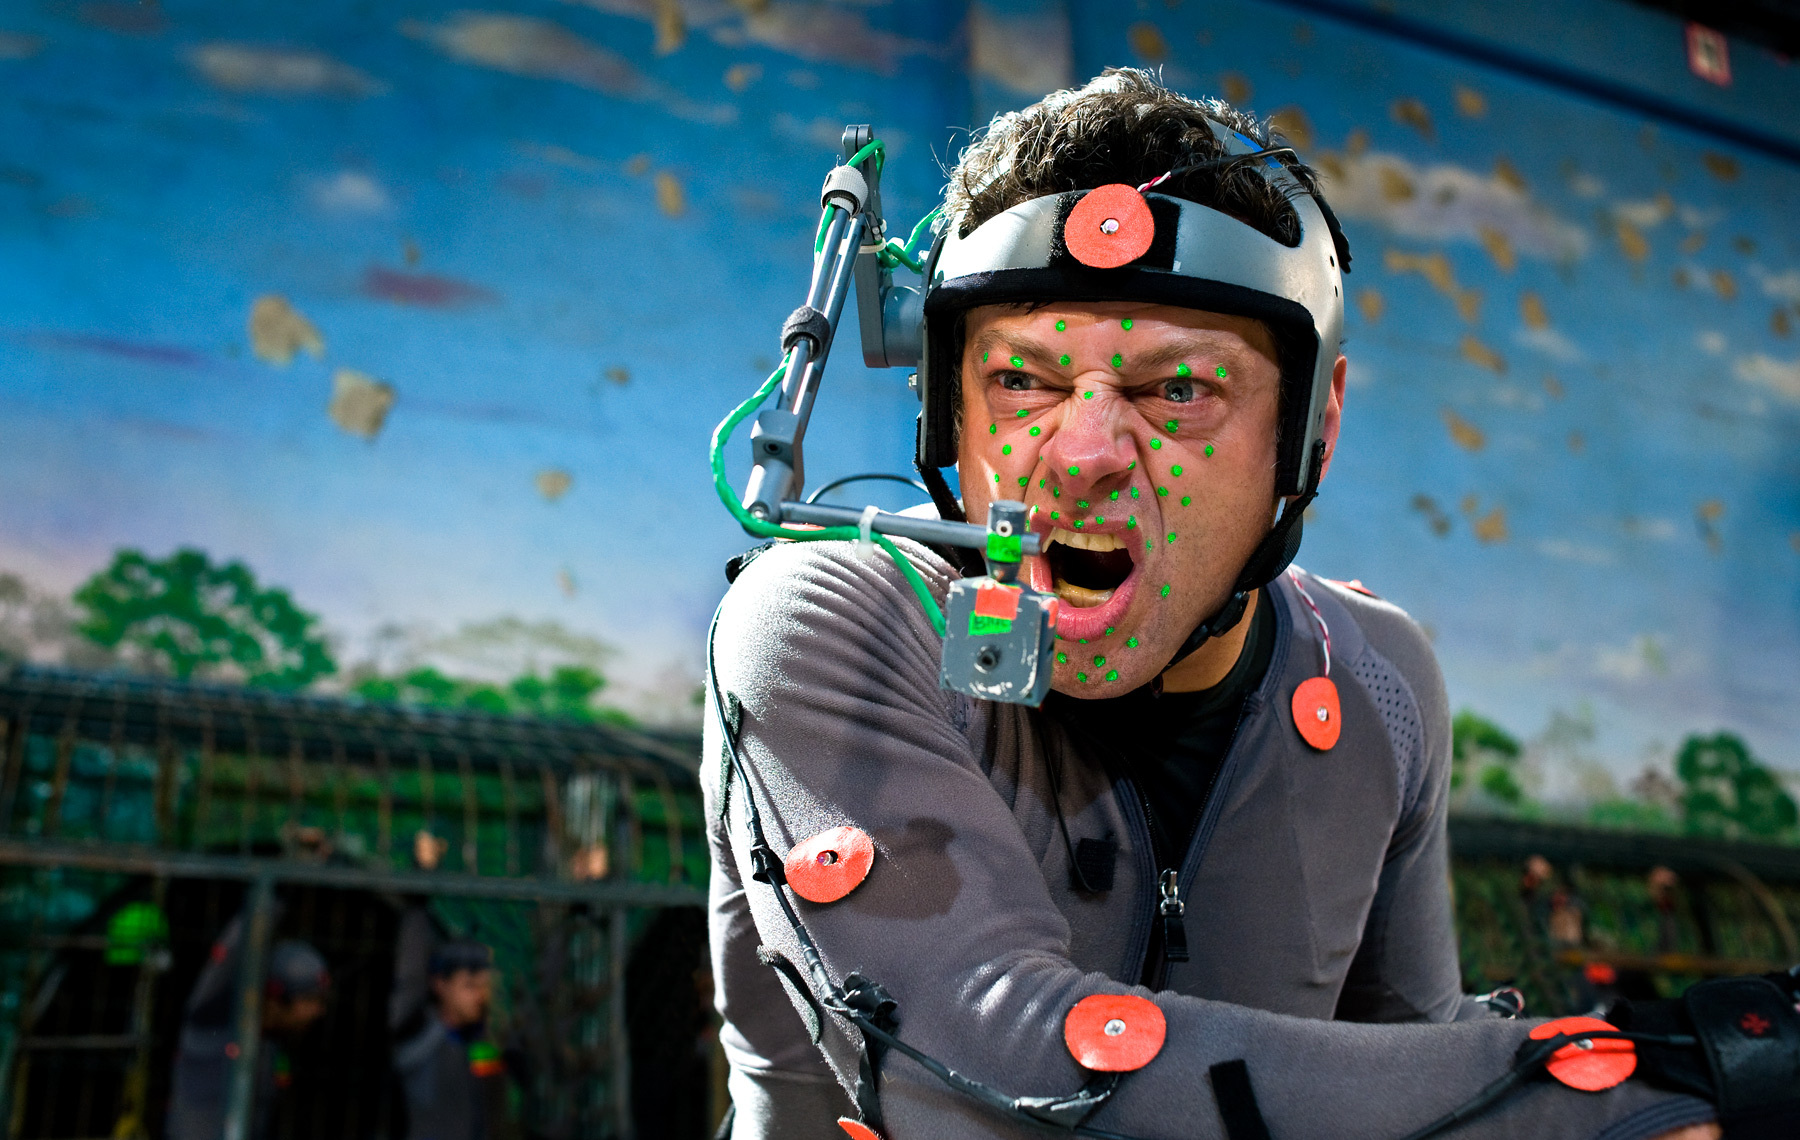 1800x1140 - Andy Serkis Wallpapers 15